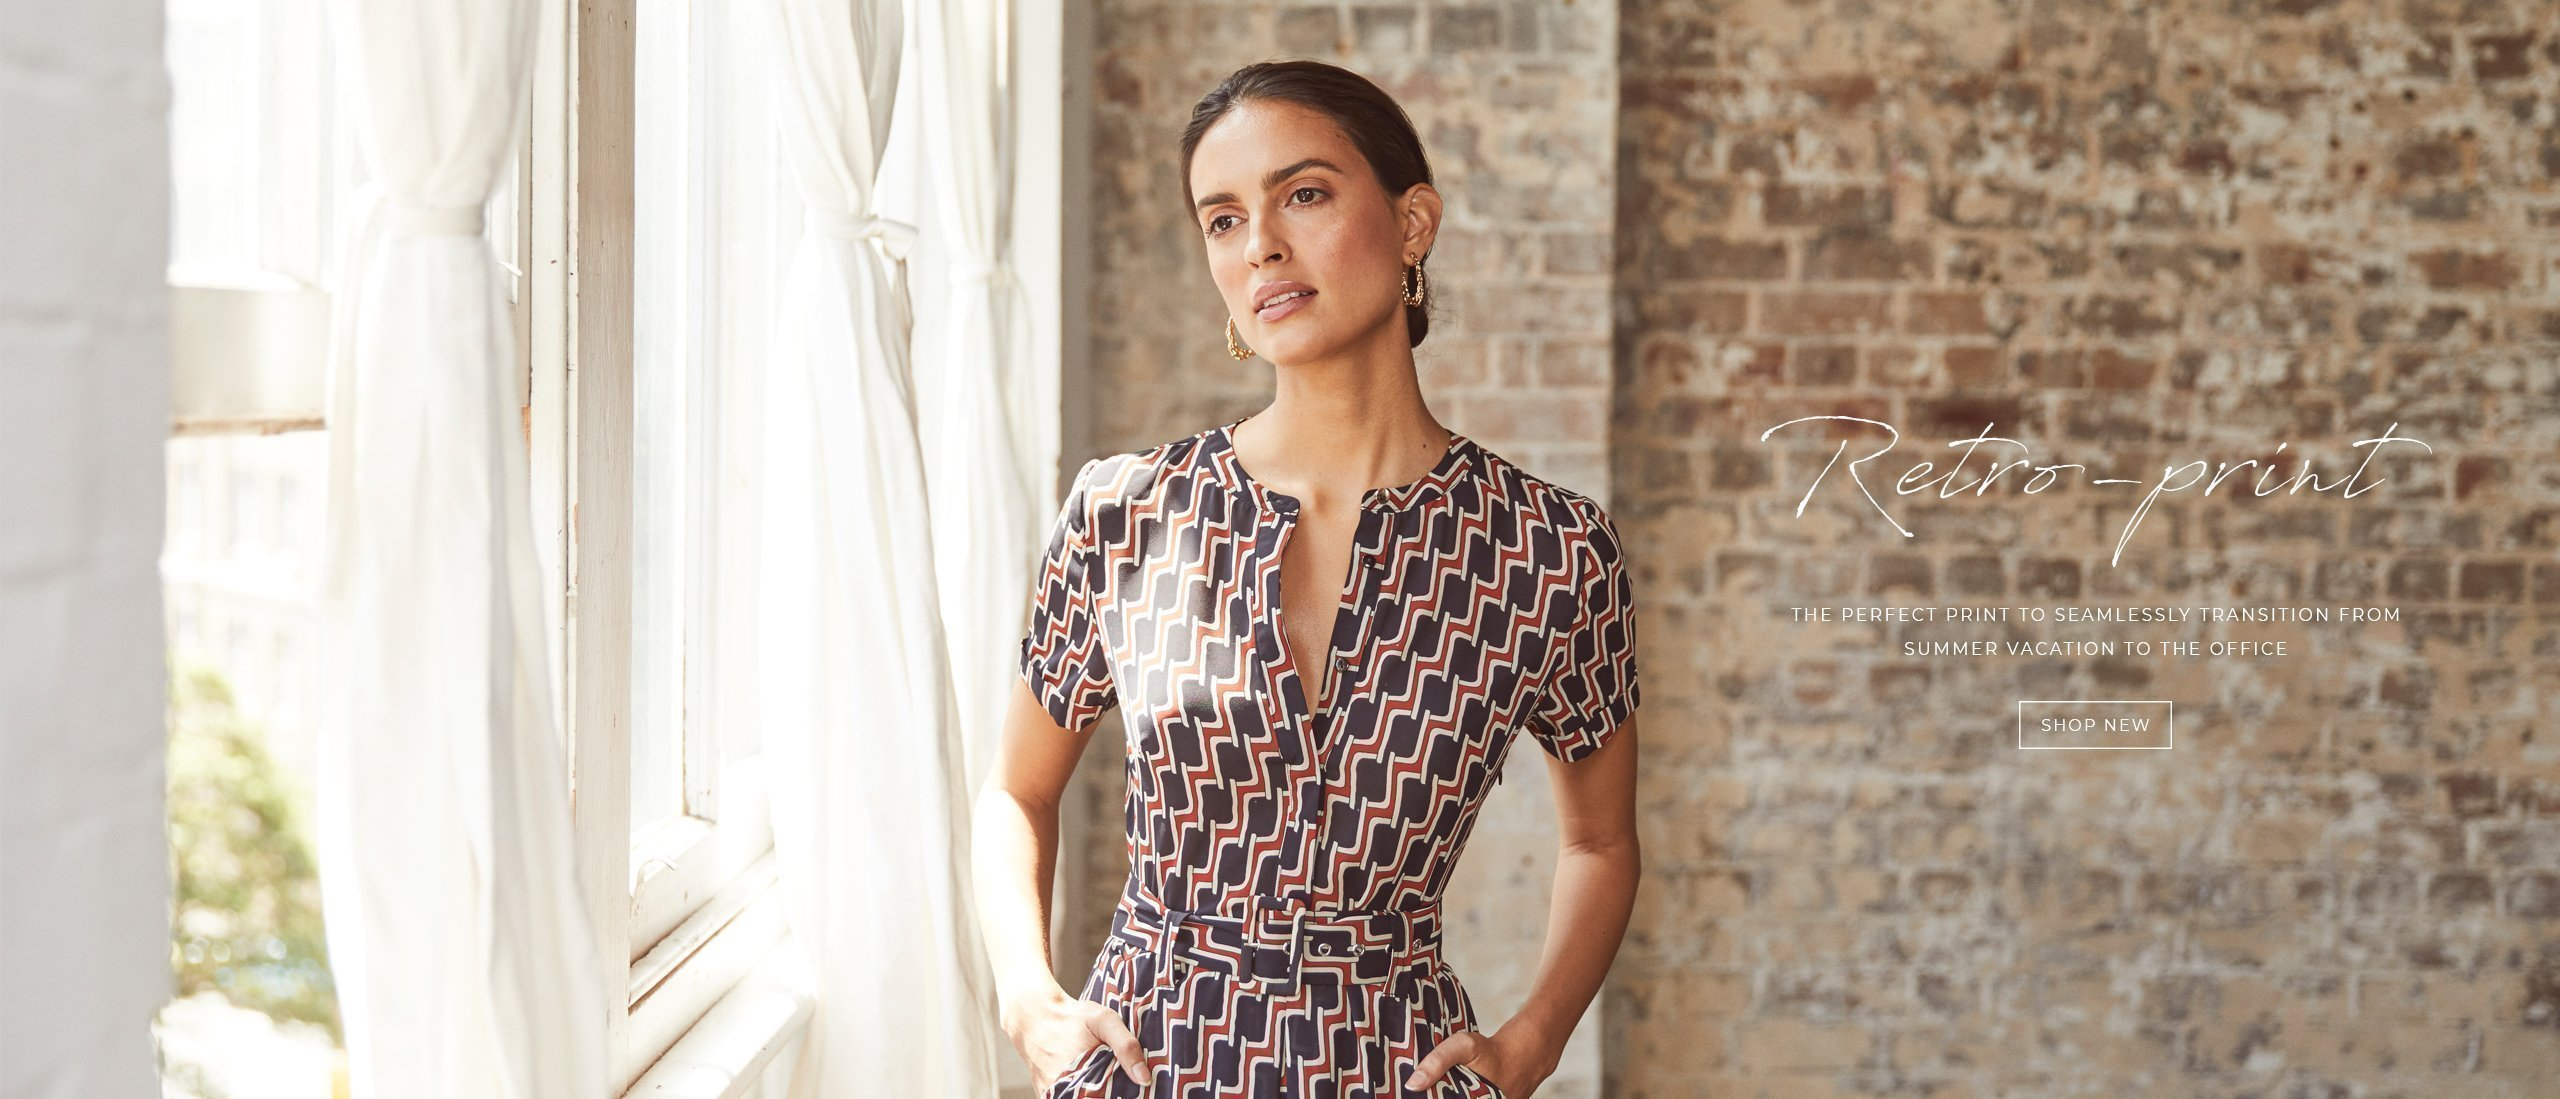 Back to Work Campaign is Here. Shop new women's workwear now.